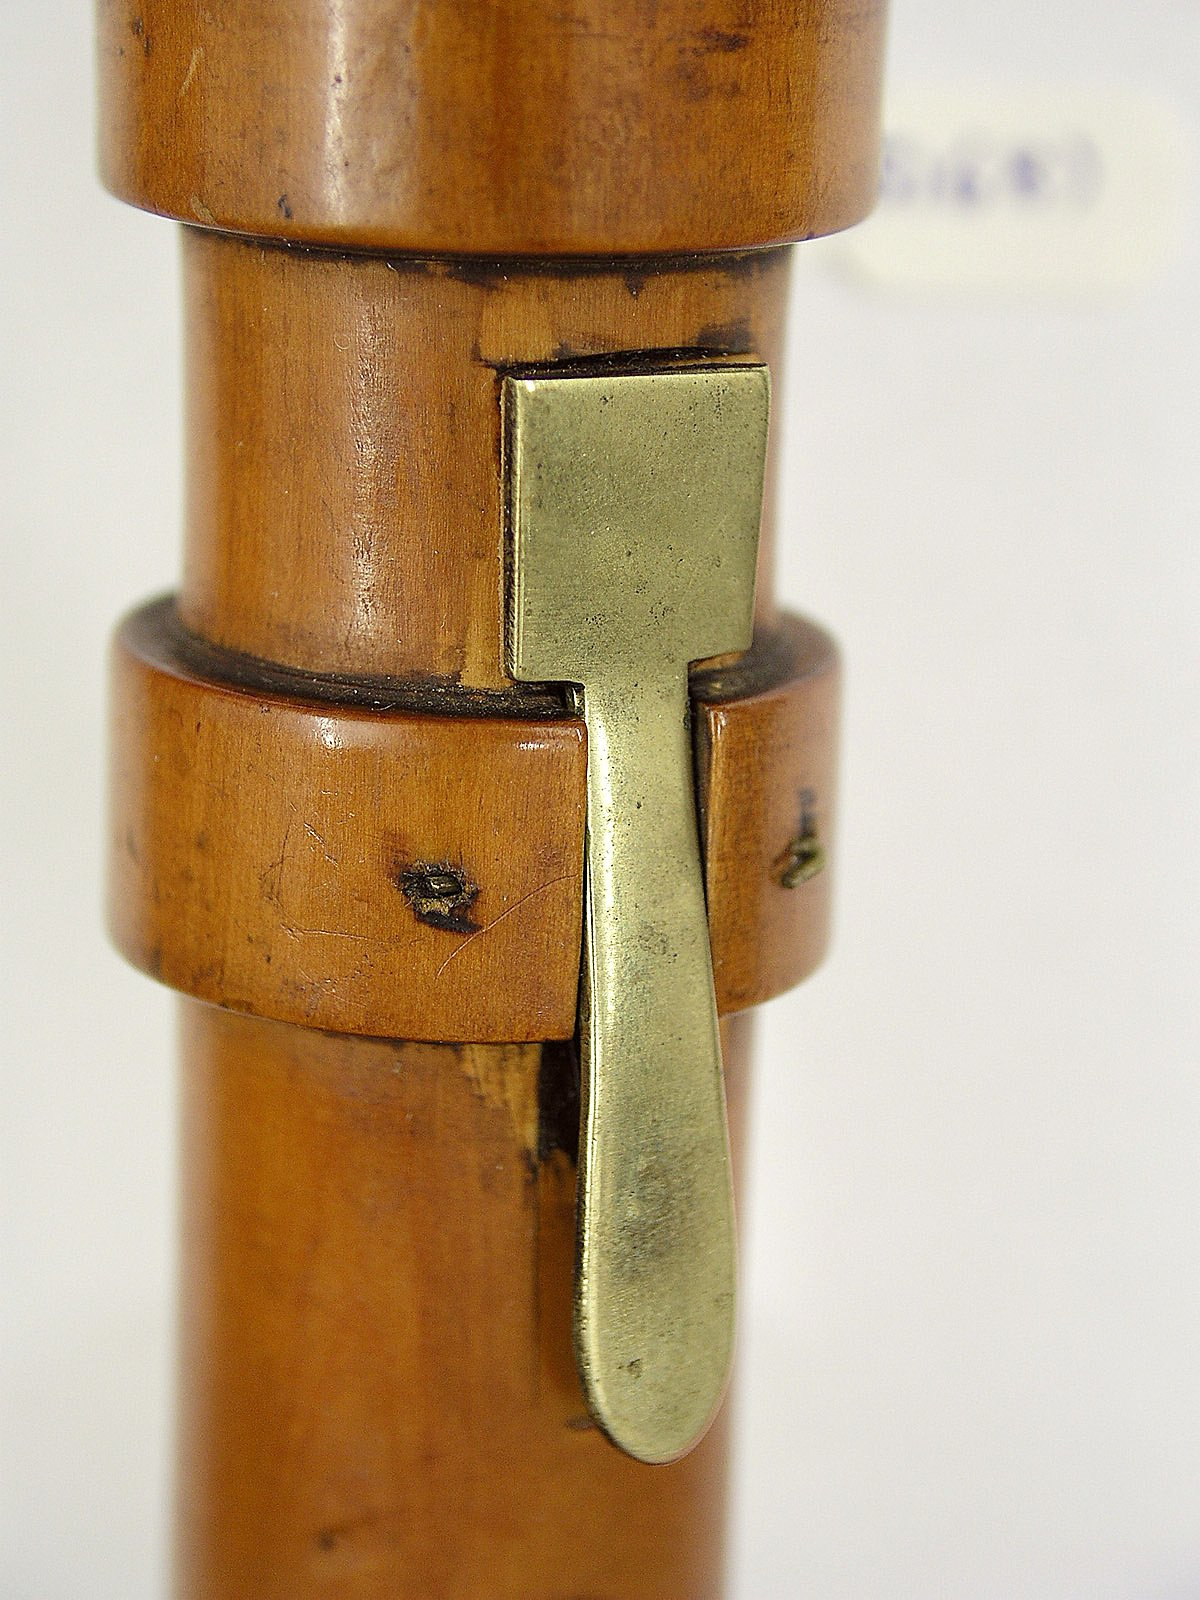 Detail of Clarinet